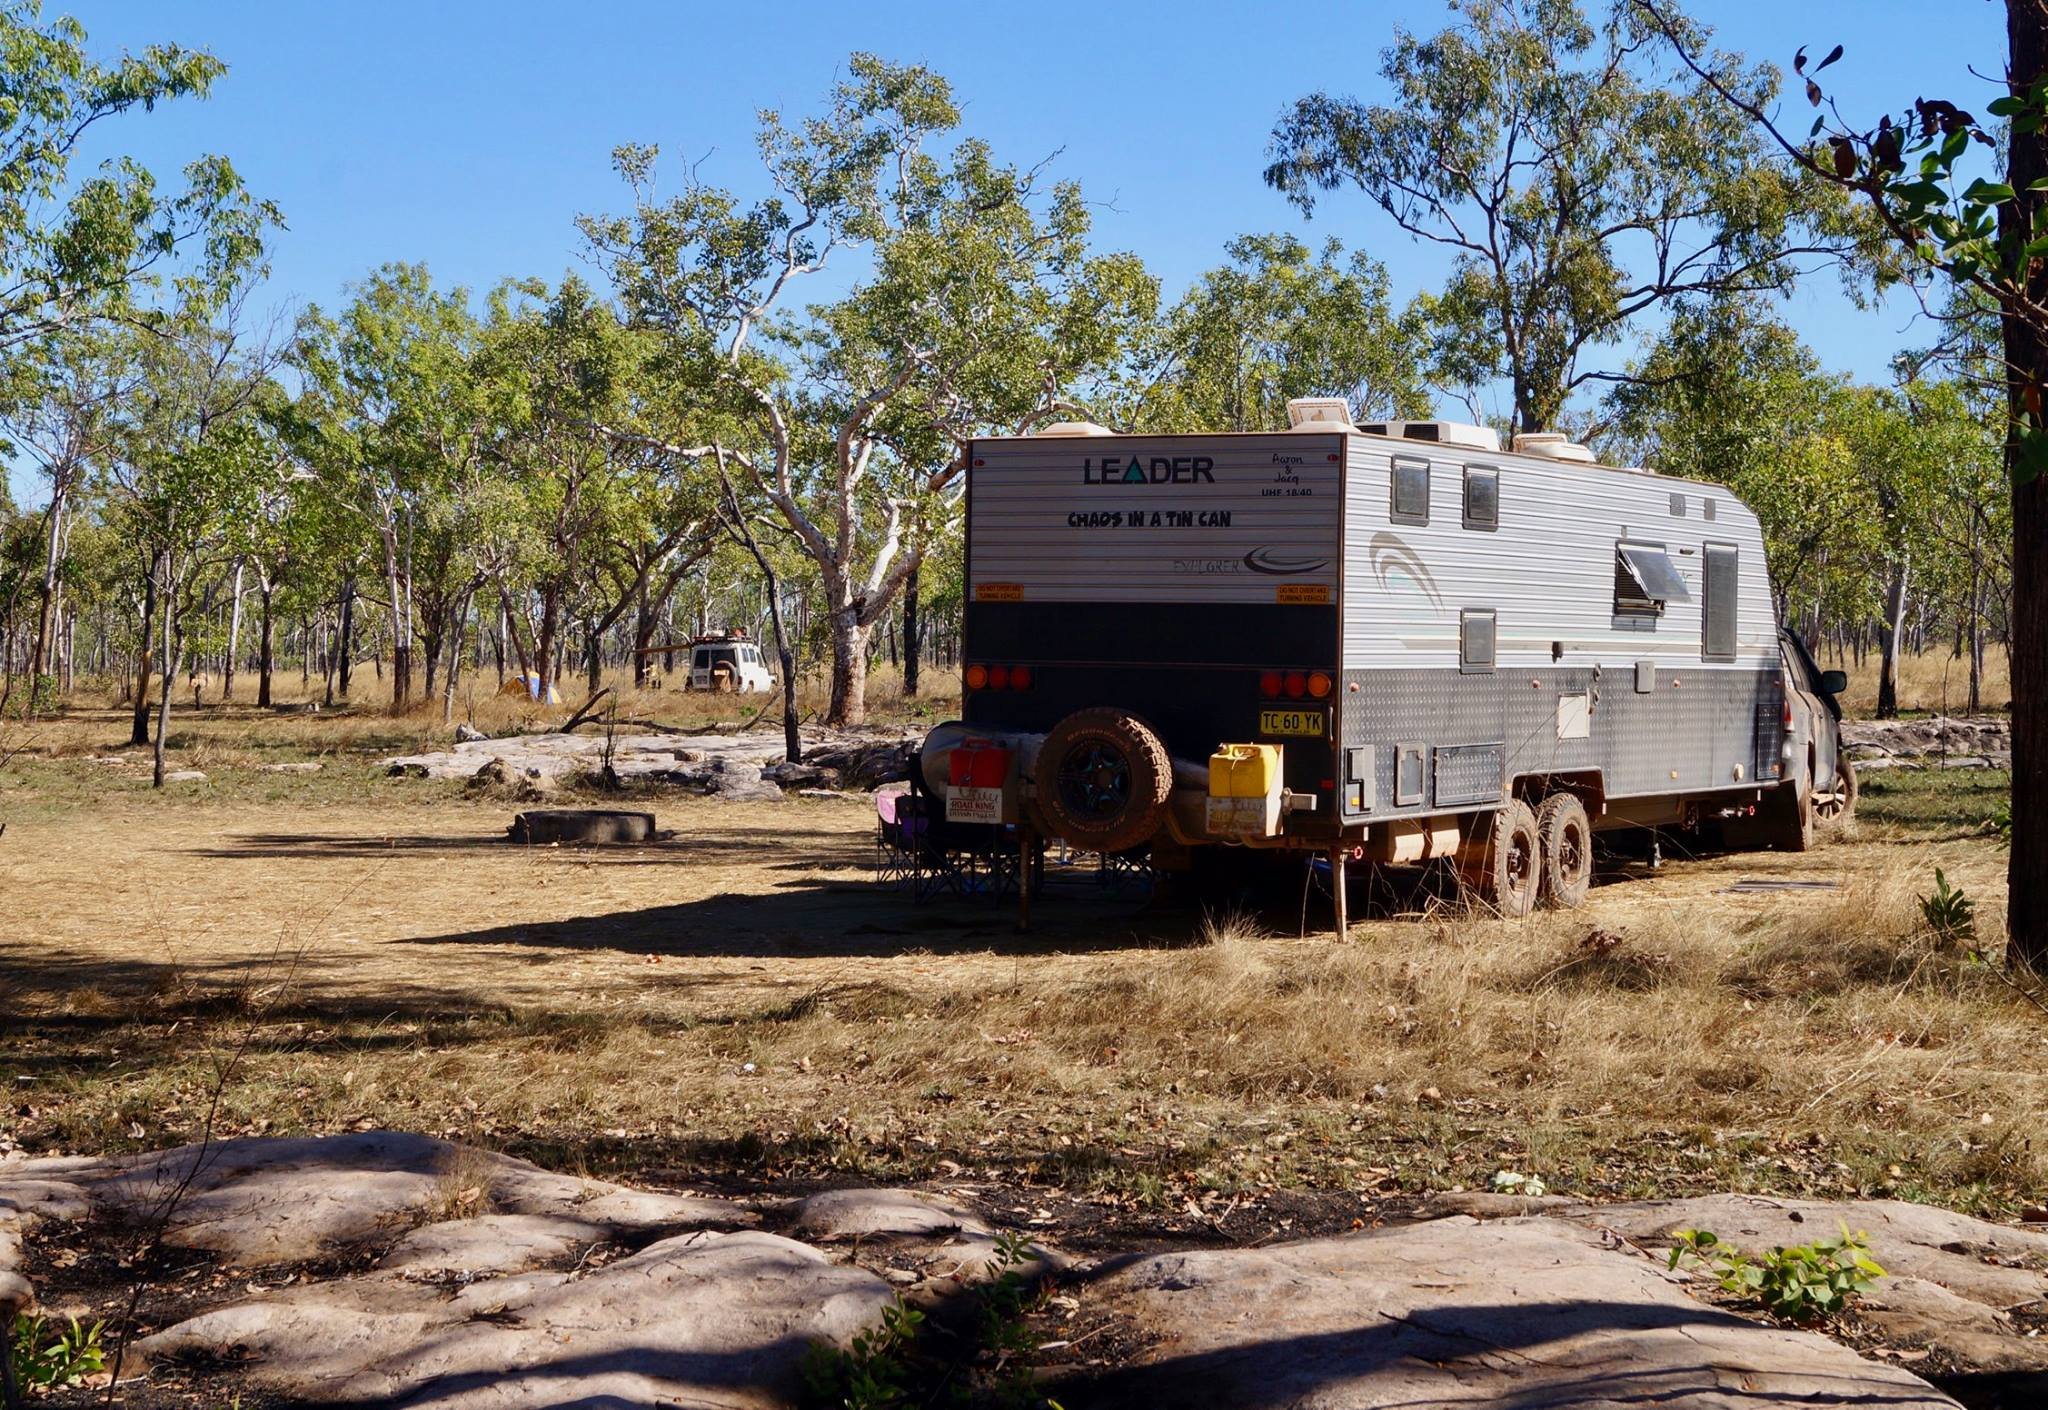 King Edward River camping